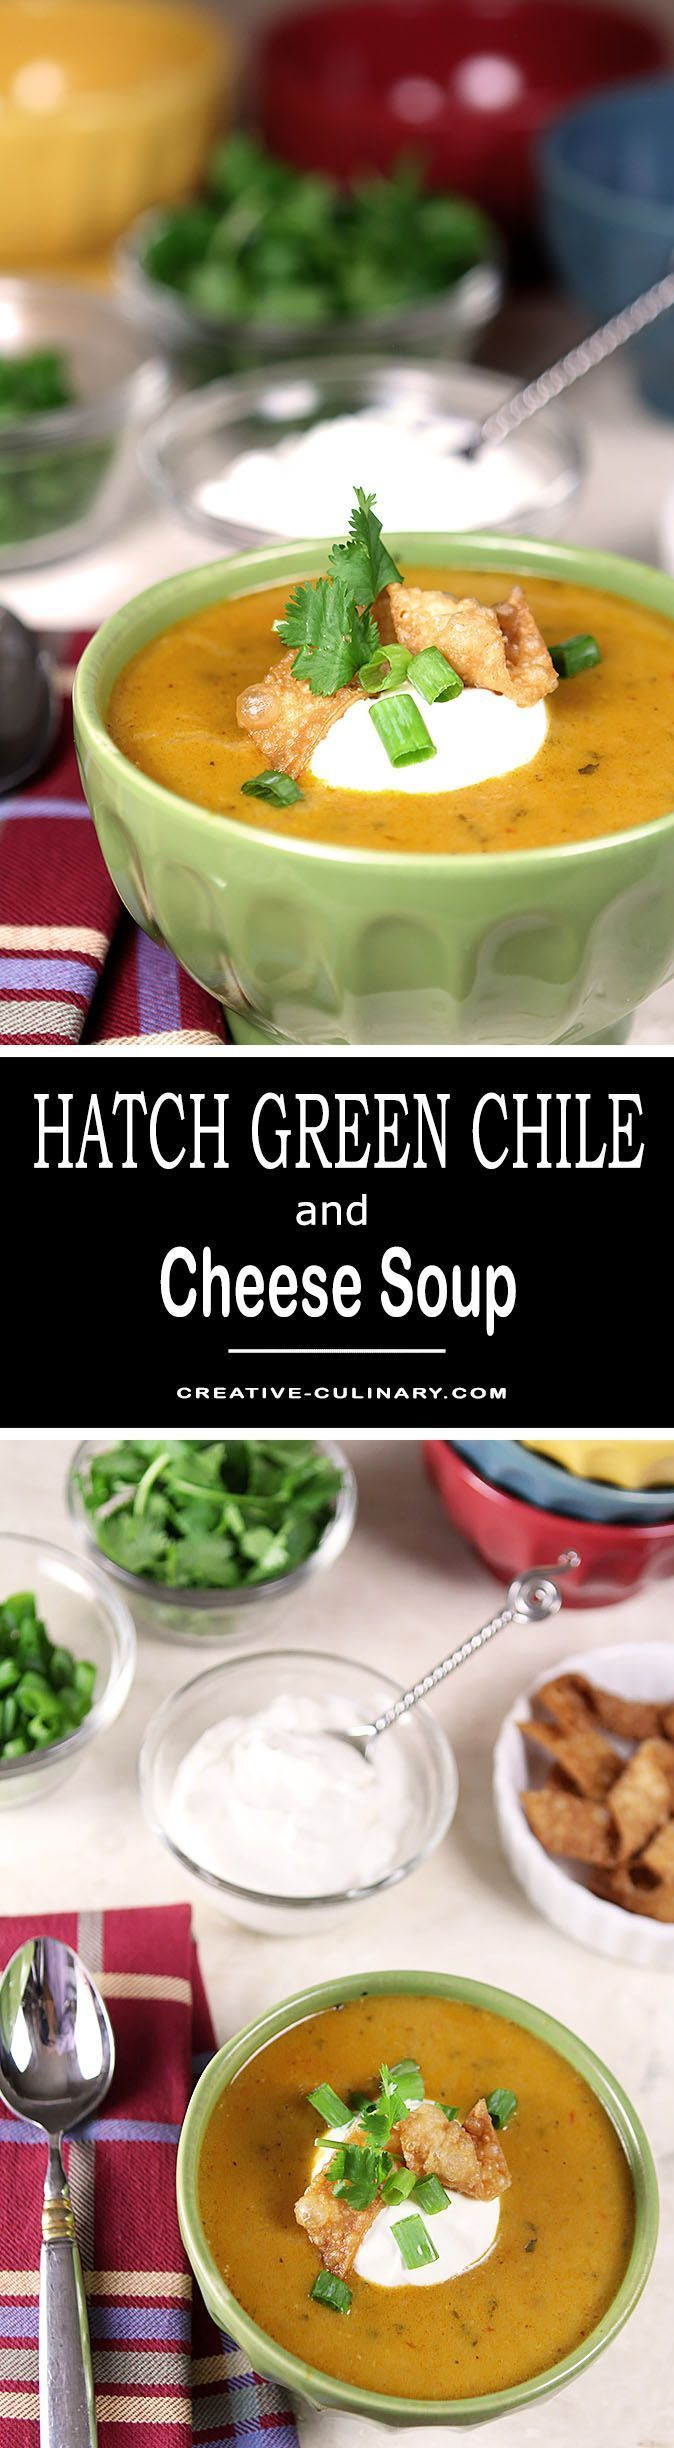 Hatch Green Chile and Cheese Soup is warm and spicy and perfect for the colder months to come. Topped with sour cream for a cool dollop; it's perfect. via @creativculinary  #hatch #green #chile #soup